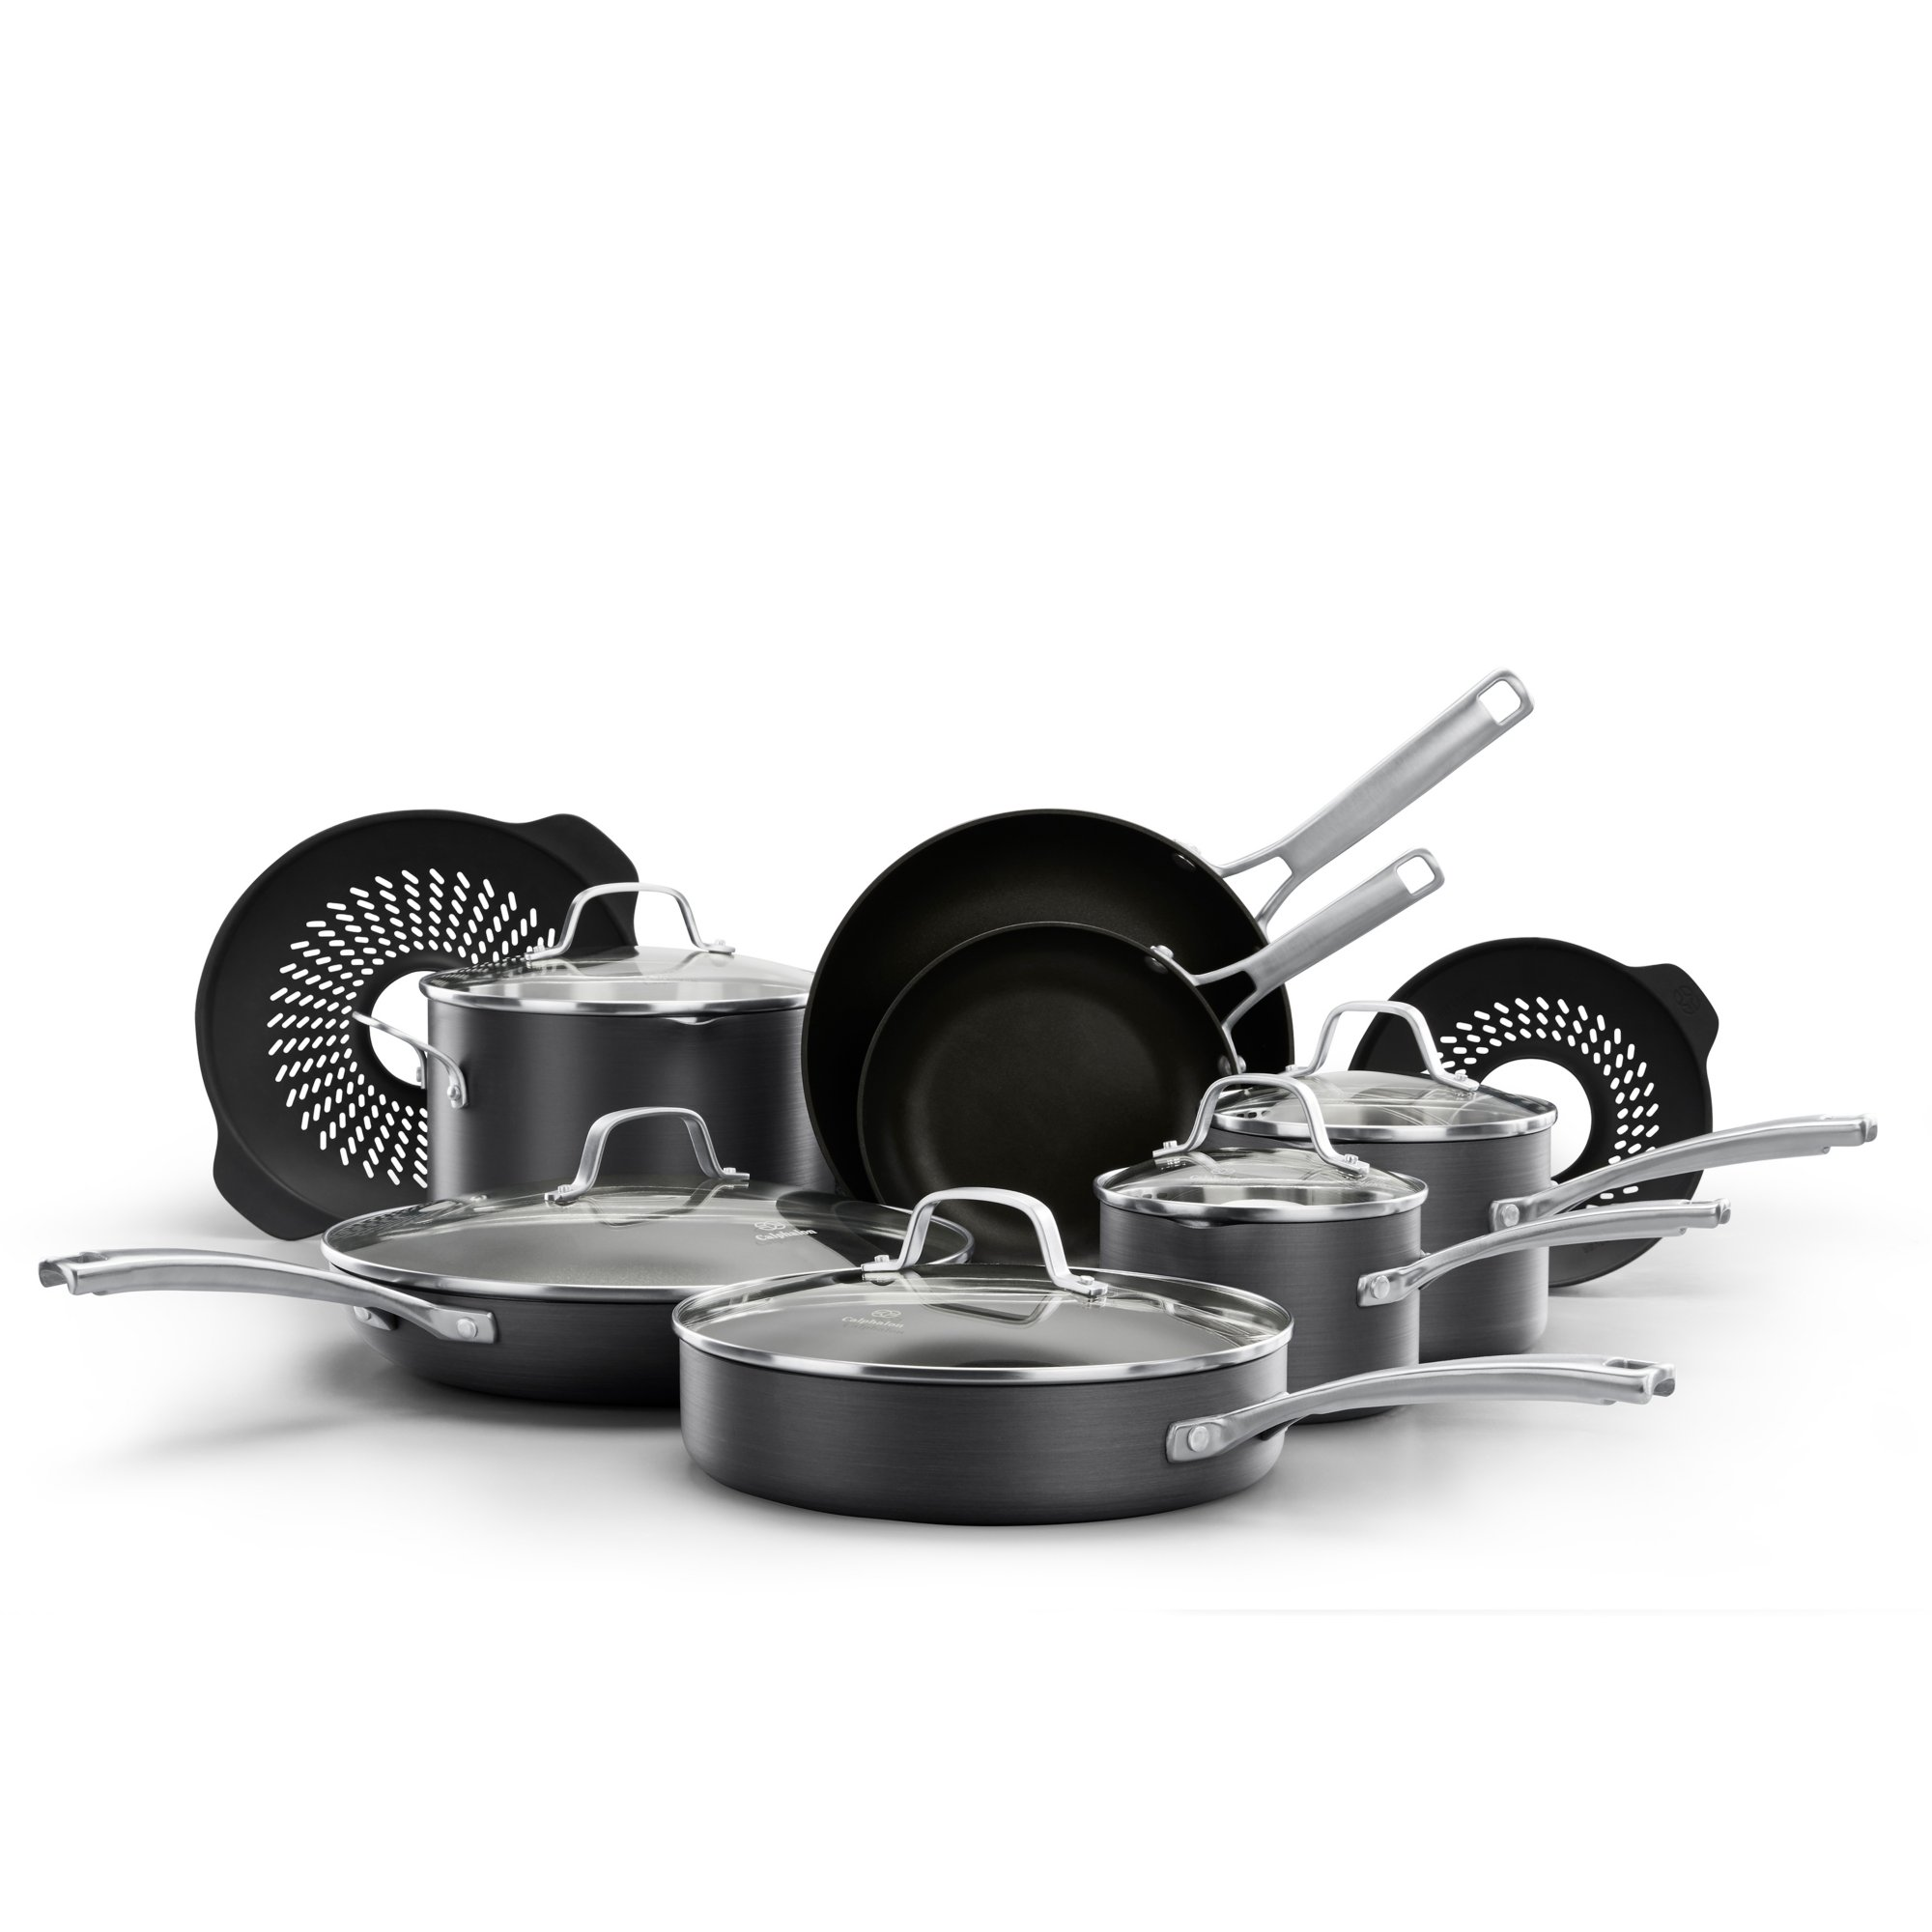 Calphalon Classic™ Nonstick 14-Piece Cookware Set With No Boil-Over Inserts